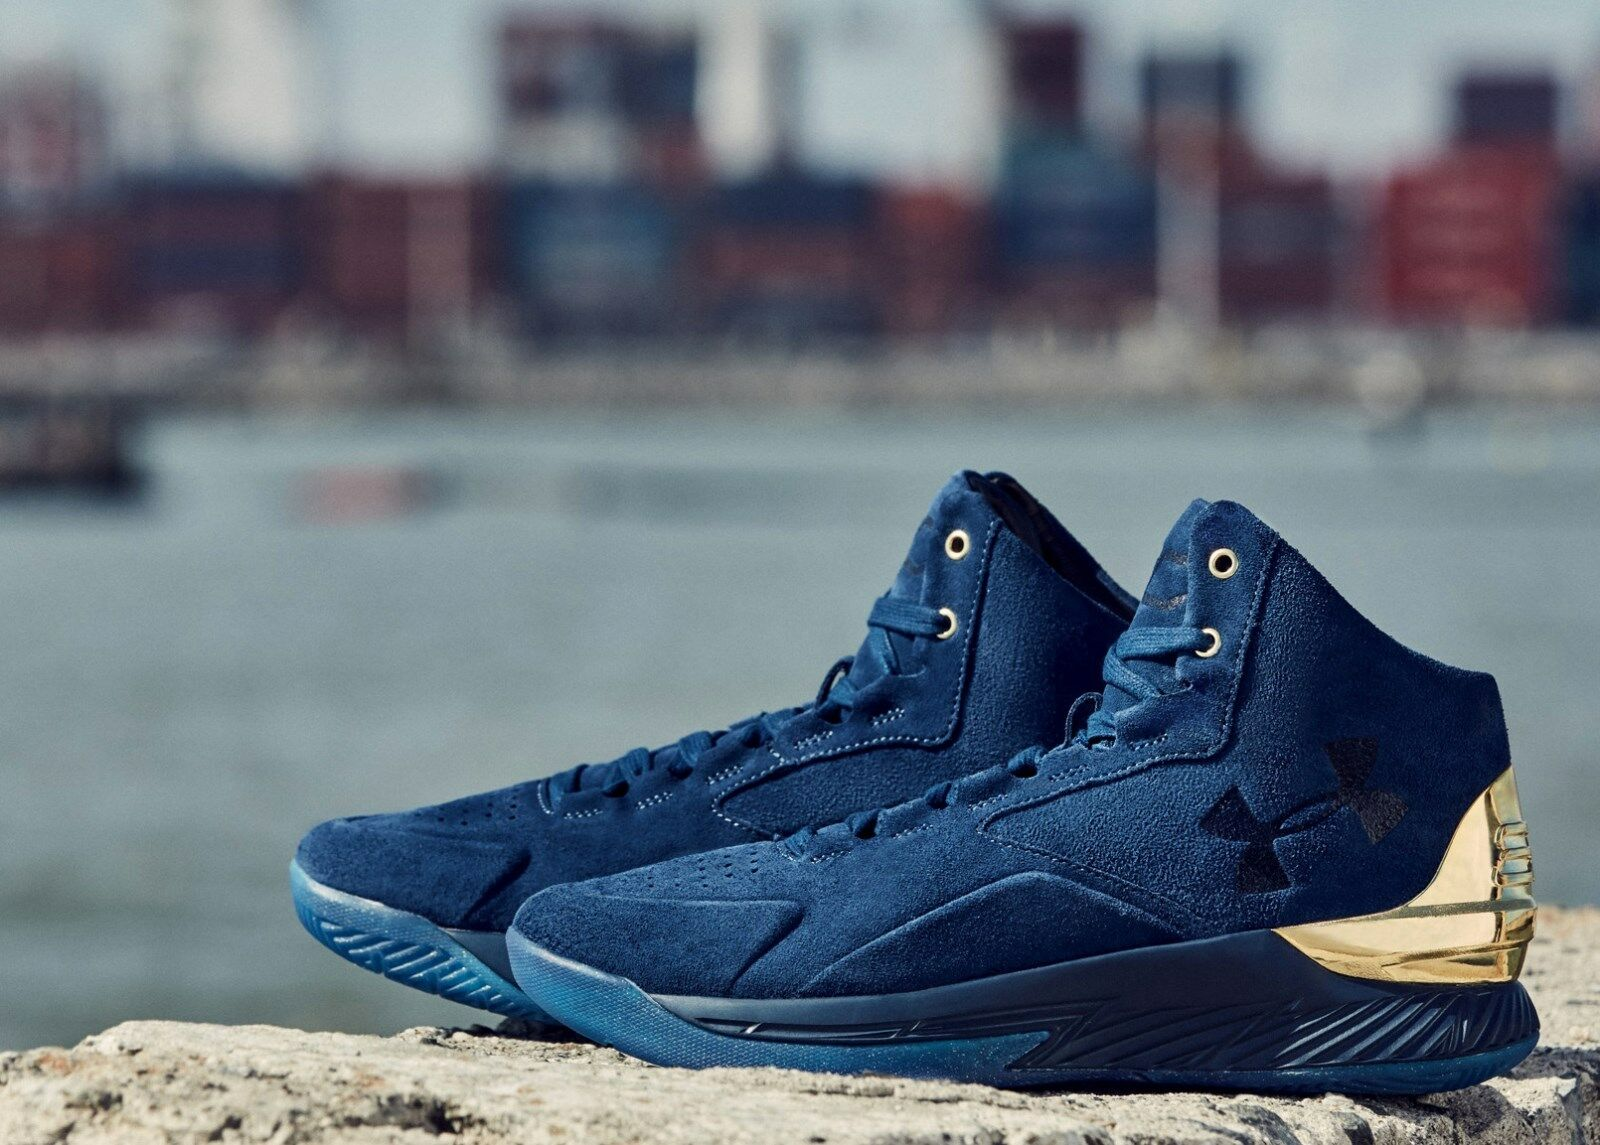 UNDER ARMOUR 0 Steph Curry 1 Lux Mid Suede Basketball Shoes Navy-Gold sz 10 Scarpe classiche da uomo